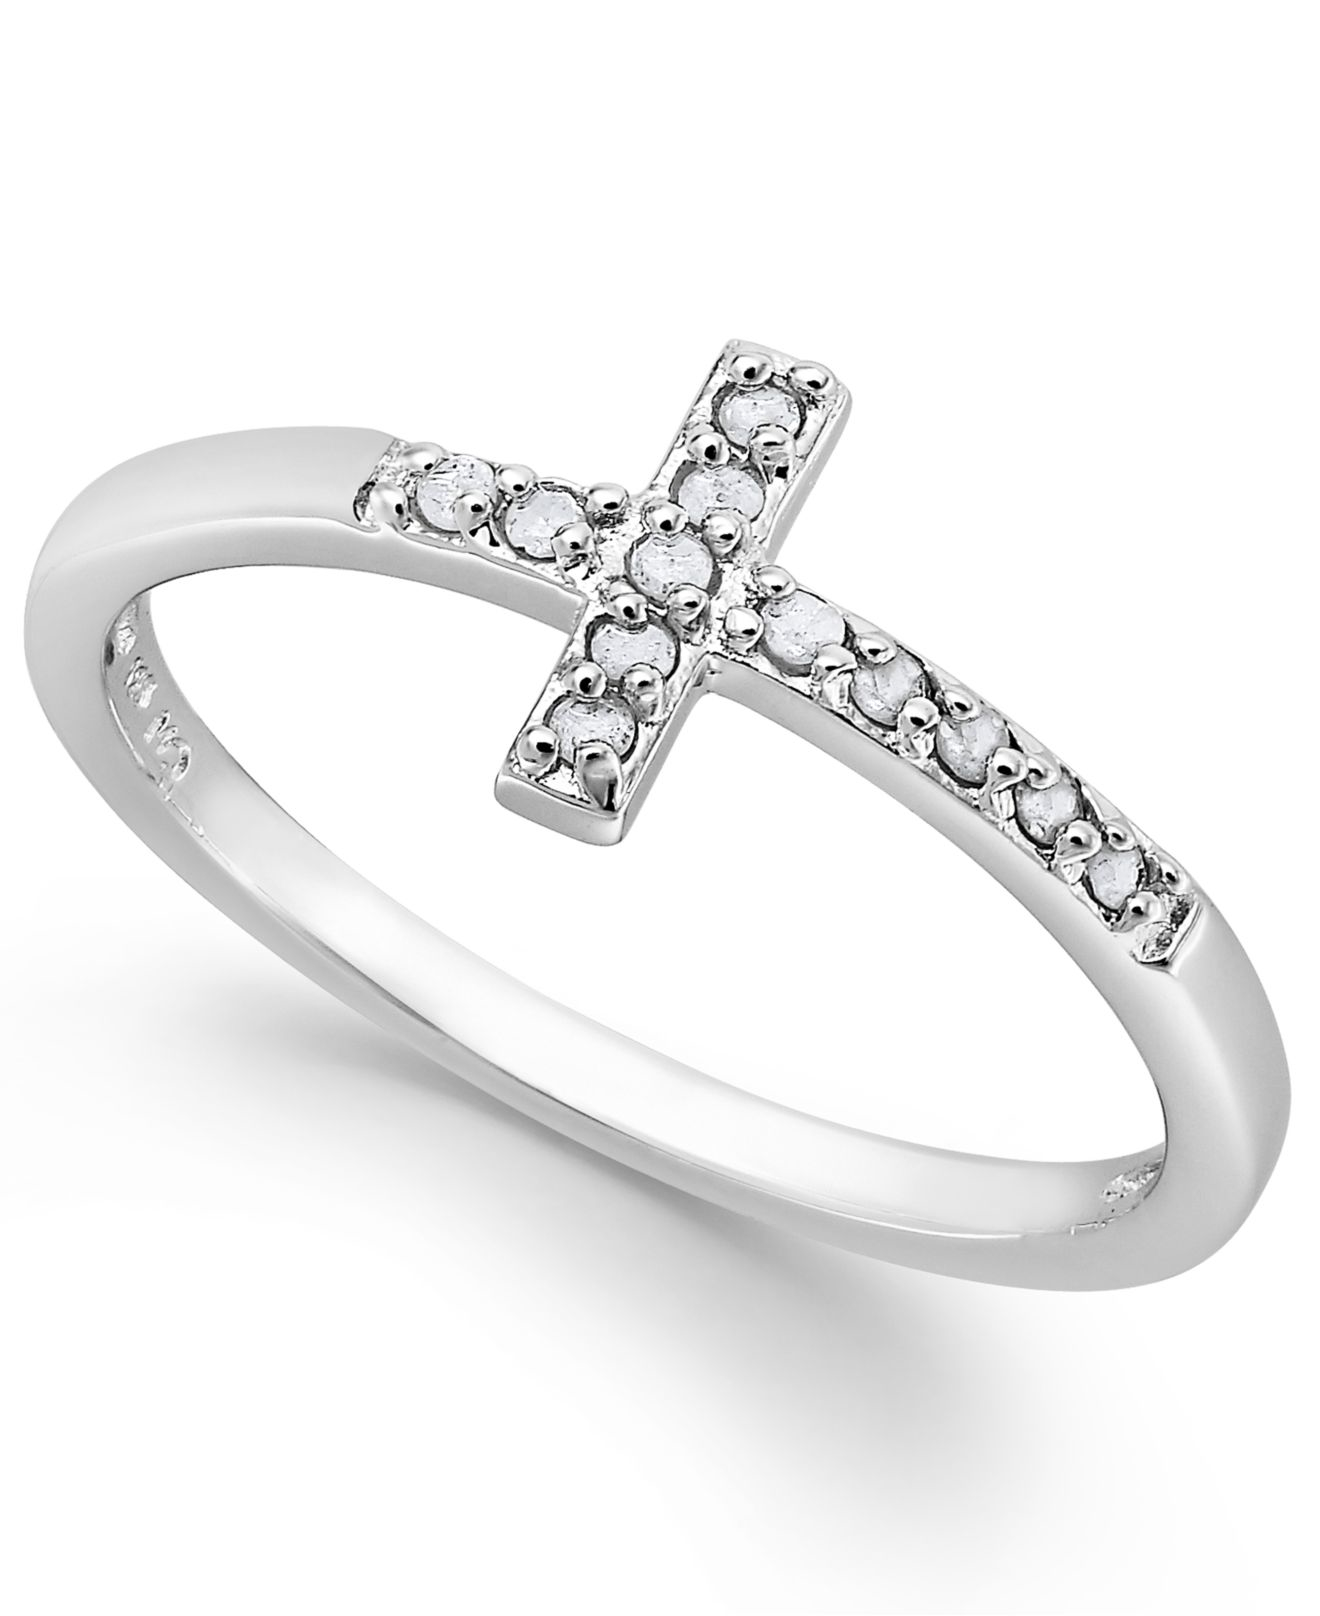 Macy's Diamond Cross Ring In Sterling Silver (110 Ct Tw. World Wide Dream Builders Wedding Rings. Different Stone Engagement Rings. Cullinan Ix Rings. Pretty Wedding Wedding Rings. Male Friendship Rings. Small Diamond Engagement Rings. Common Wedding Wedding Rings. Colourful Wedding Engagement Rings